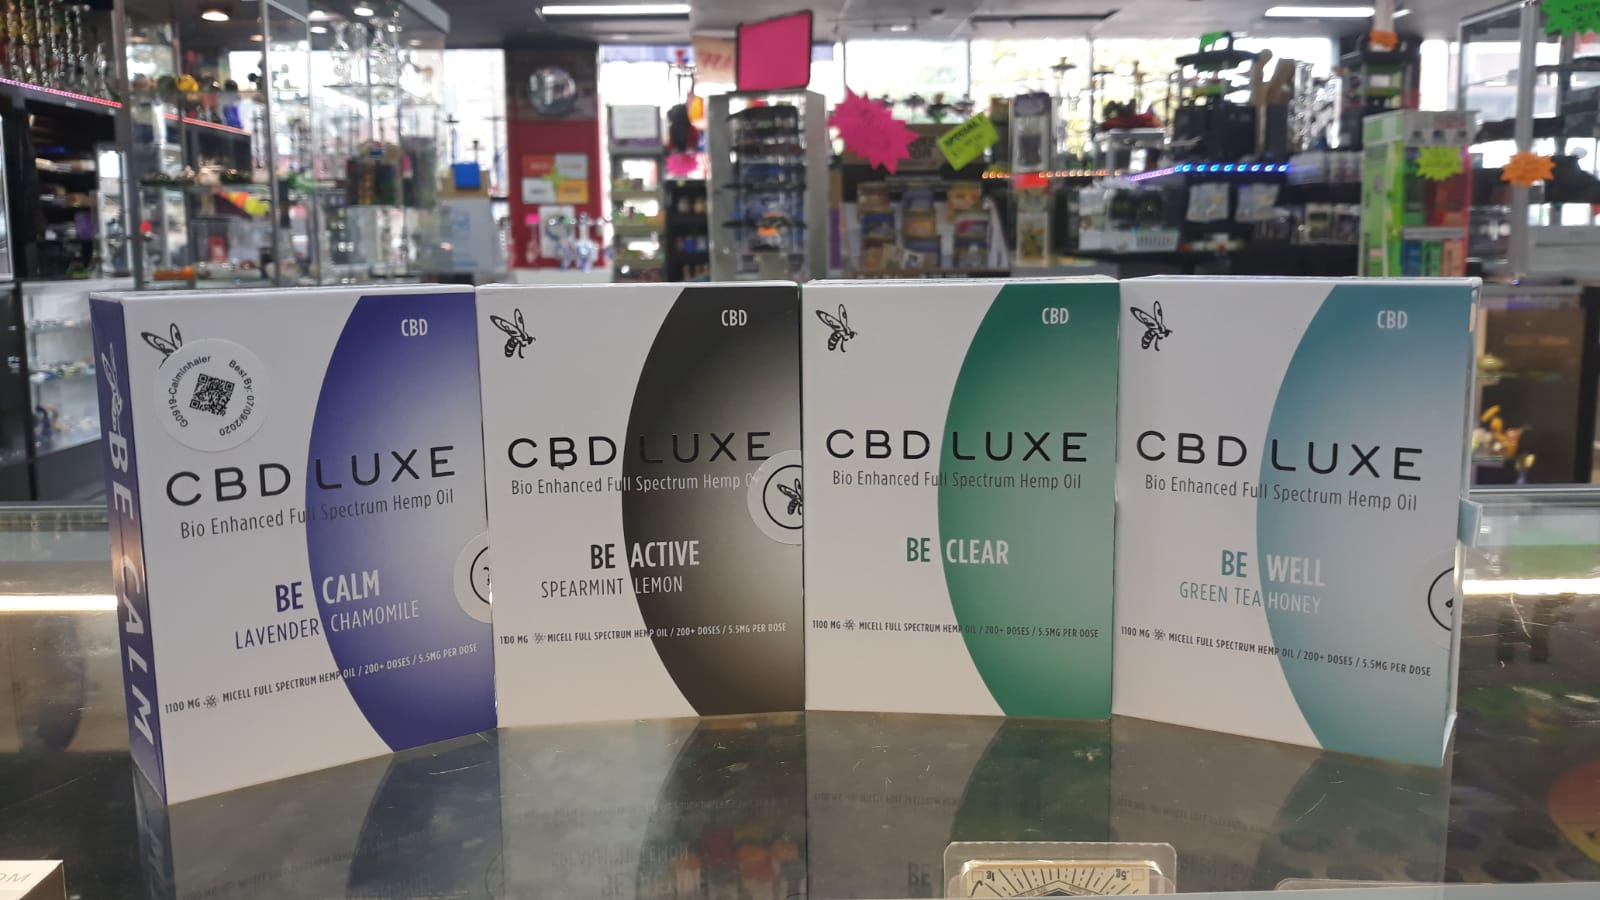 CBD Luxe inhaler in Kansas City